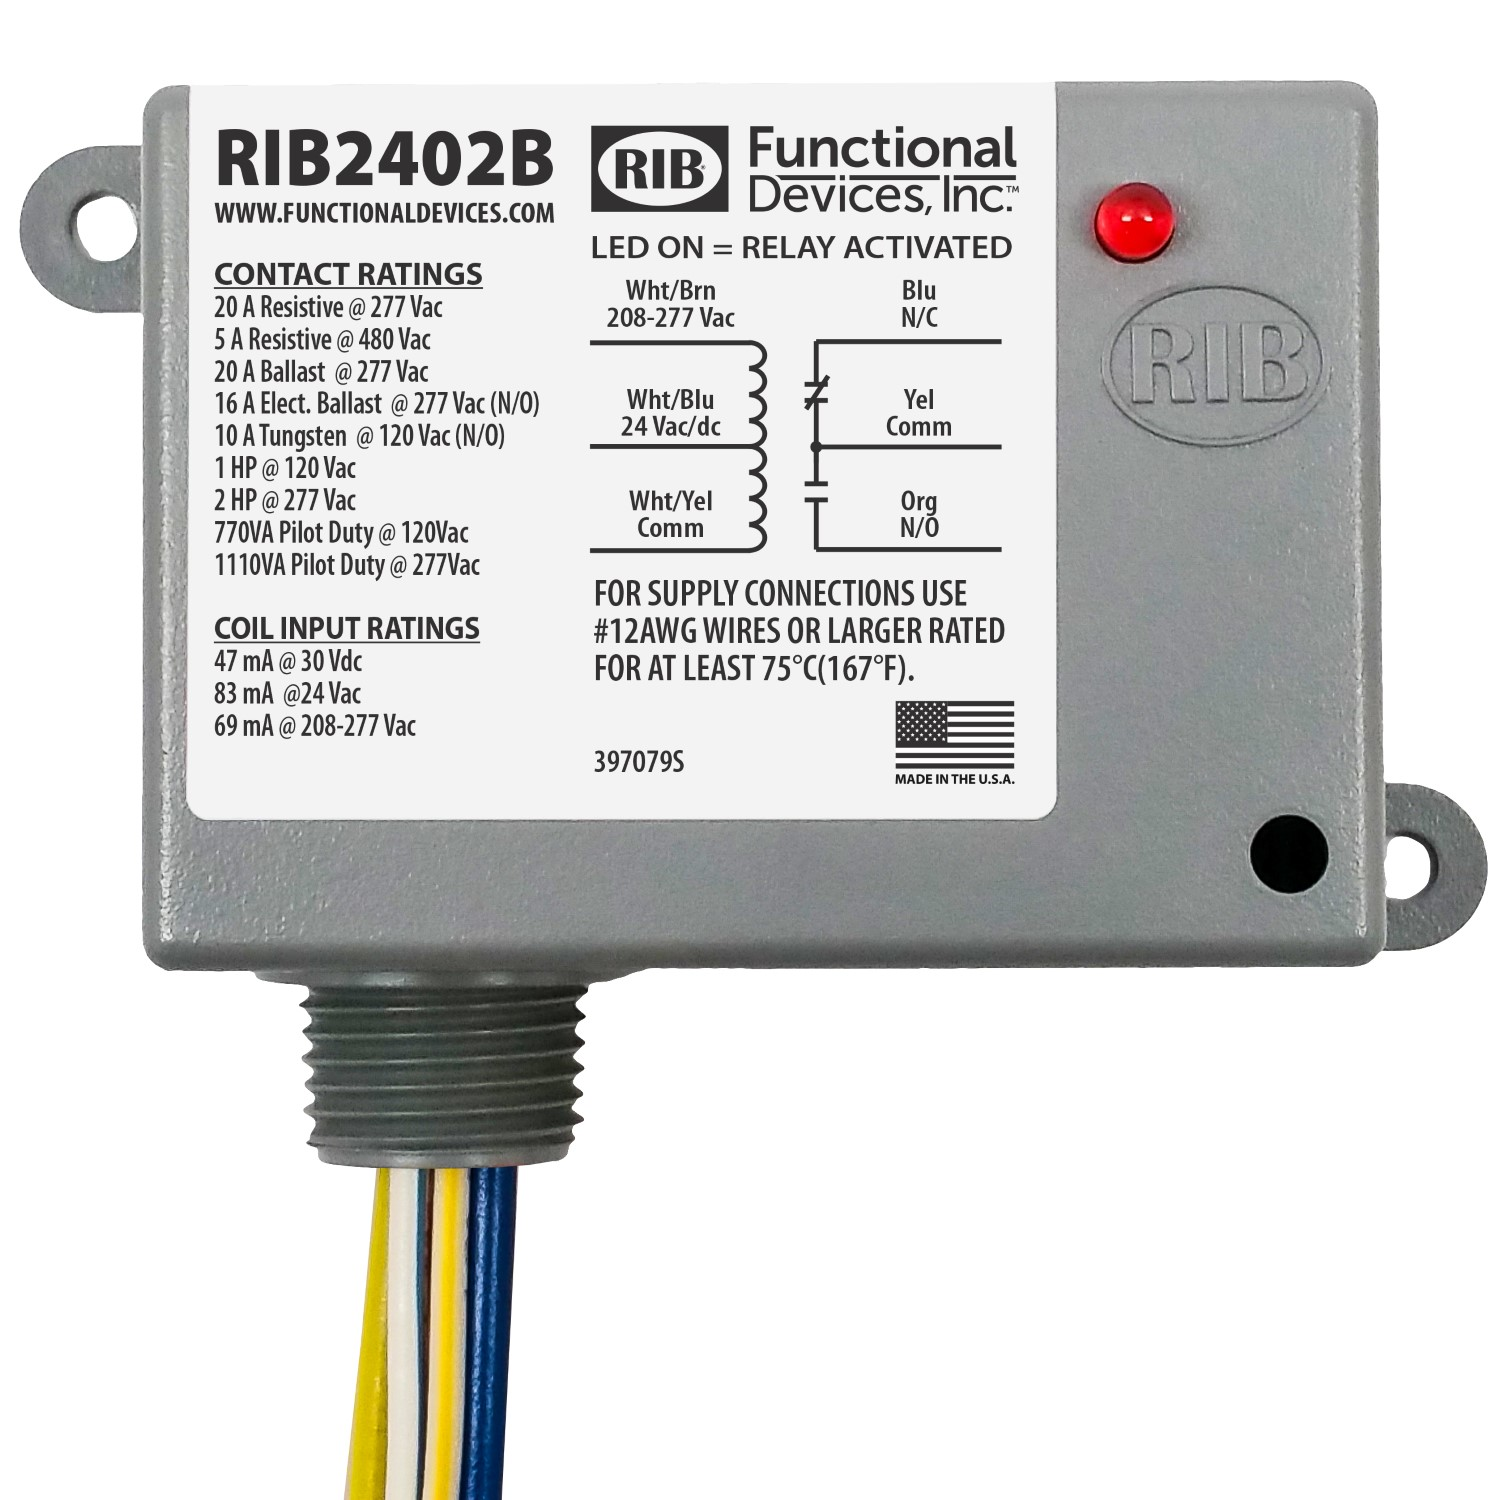 hight resolution of functional devices rib rib2402b enclosed relay 20amp spdt 24vac dc 208 277vac